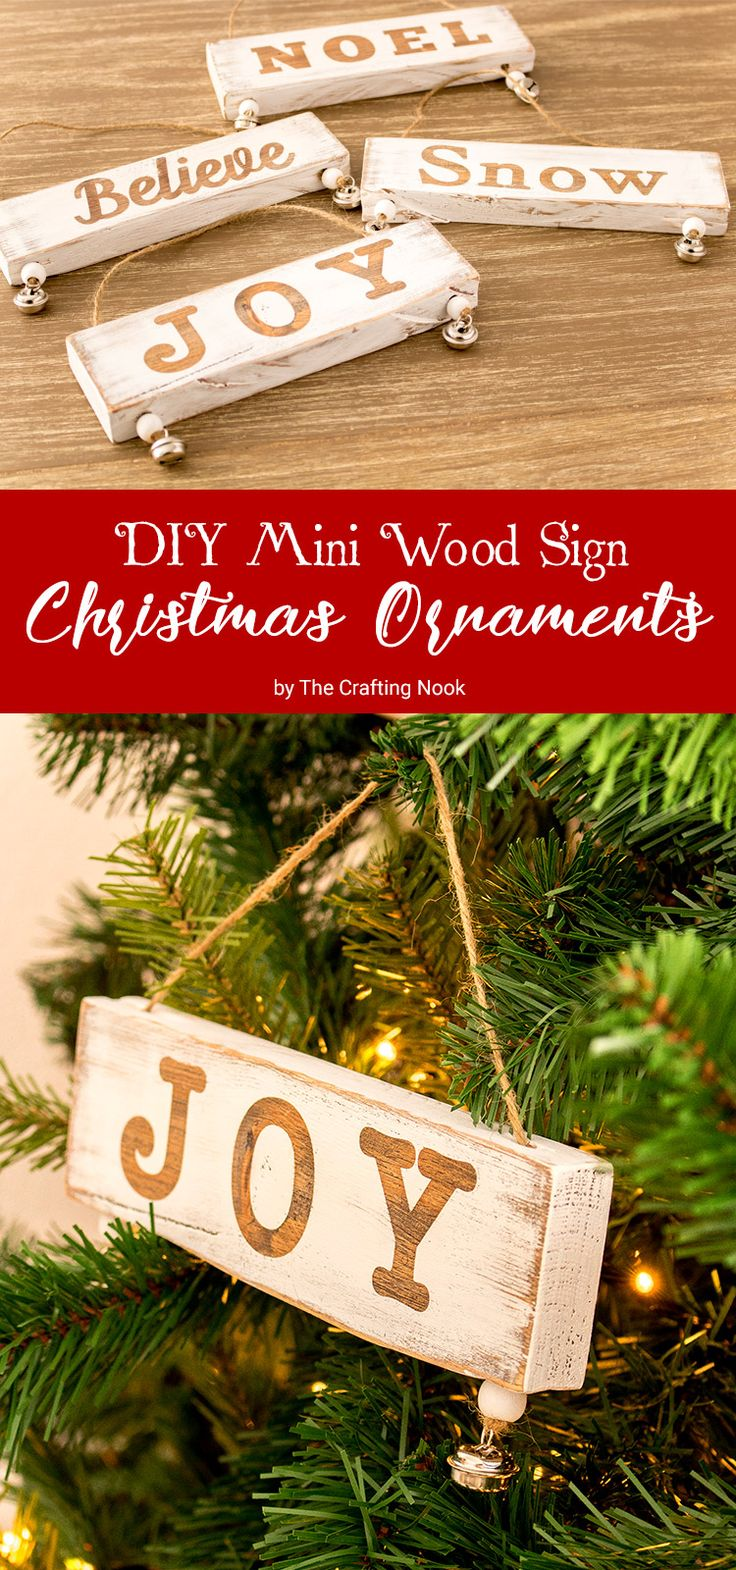 Christmas wooden christmas memories hanging sign sold out - Cute And Easy Christmas Project These Diy Mini Wood Sign Christmas Ornaments Are A Fun